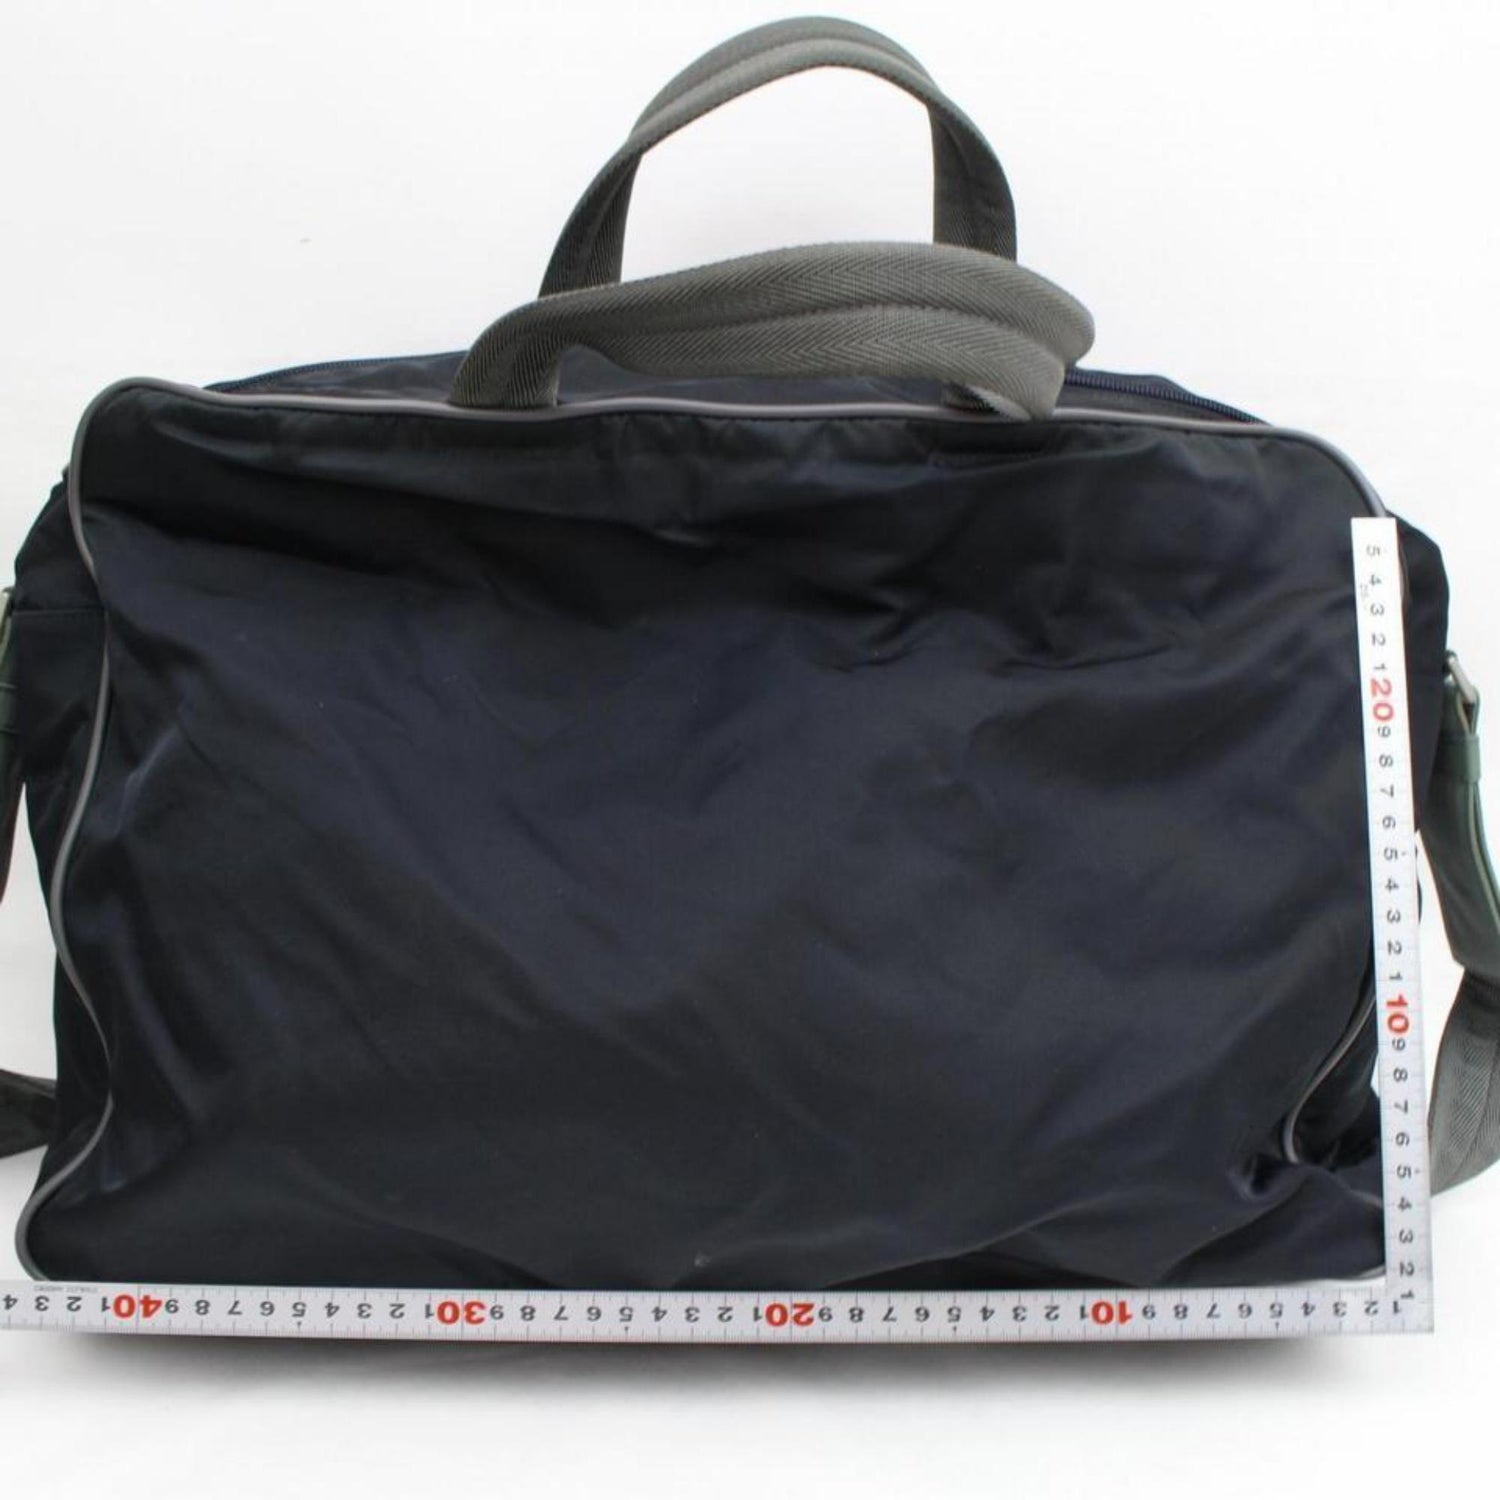 06d5ca0ce9cfcb Prada Tessuto Sports 2way 868066 Black Nylon Weekend/Travel Bag For Sale at  1stdibs